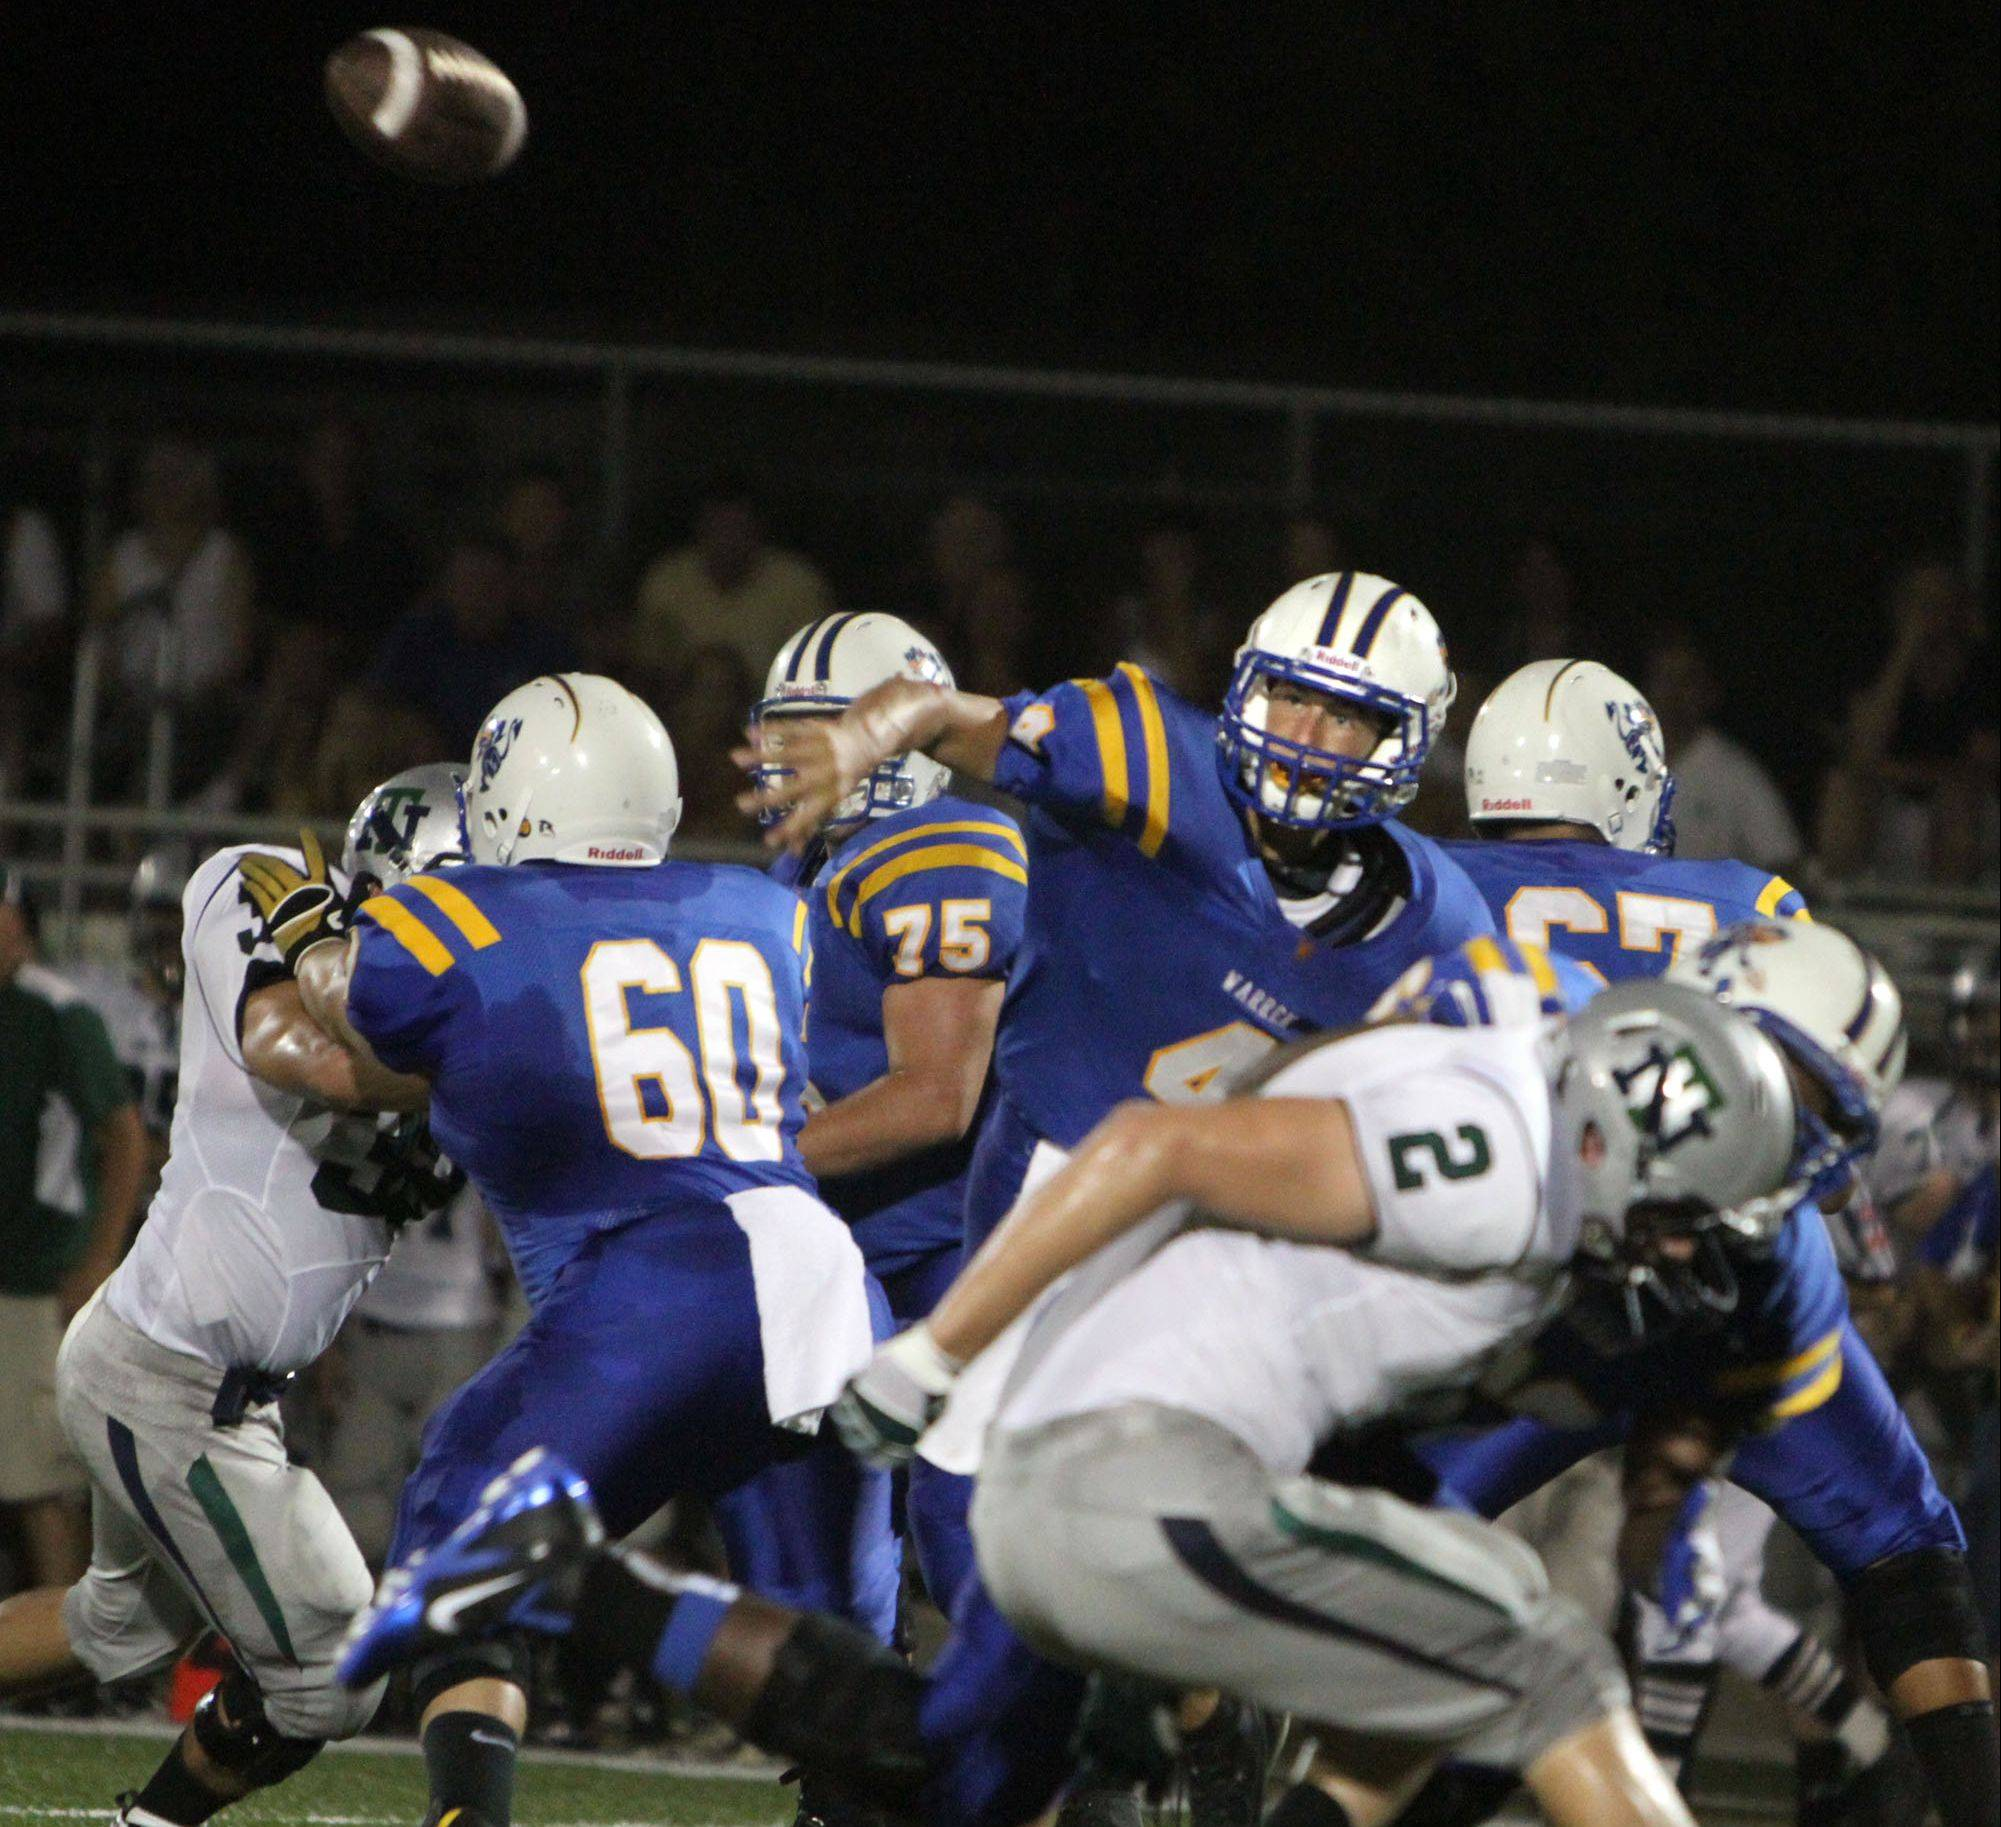 Warren's quarterback Adam Reuss finds a passing lane on Friday against visiting New Trier.